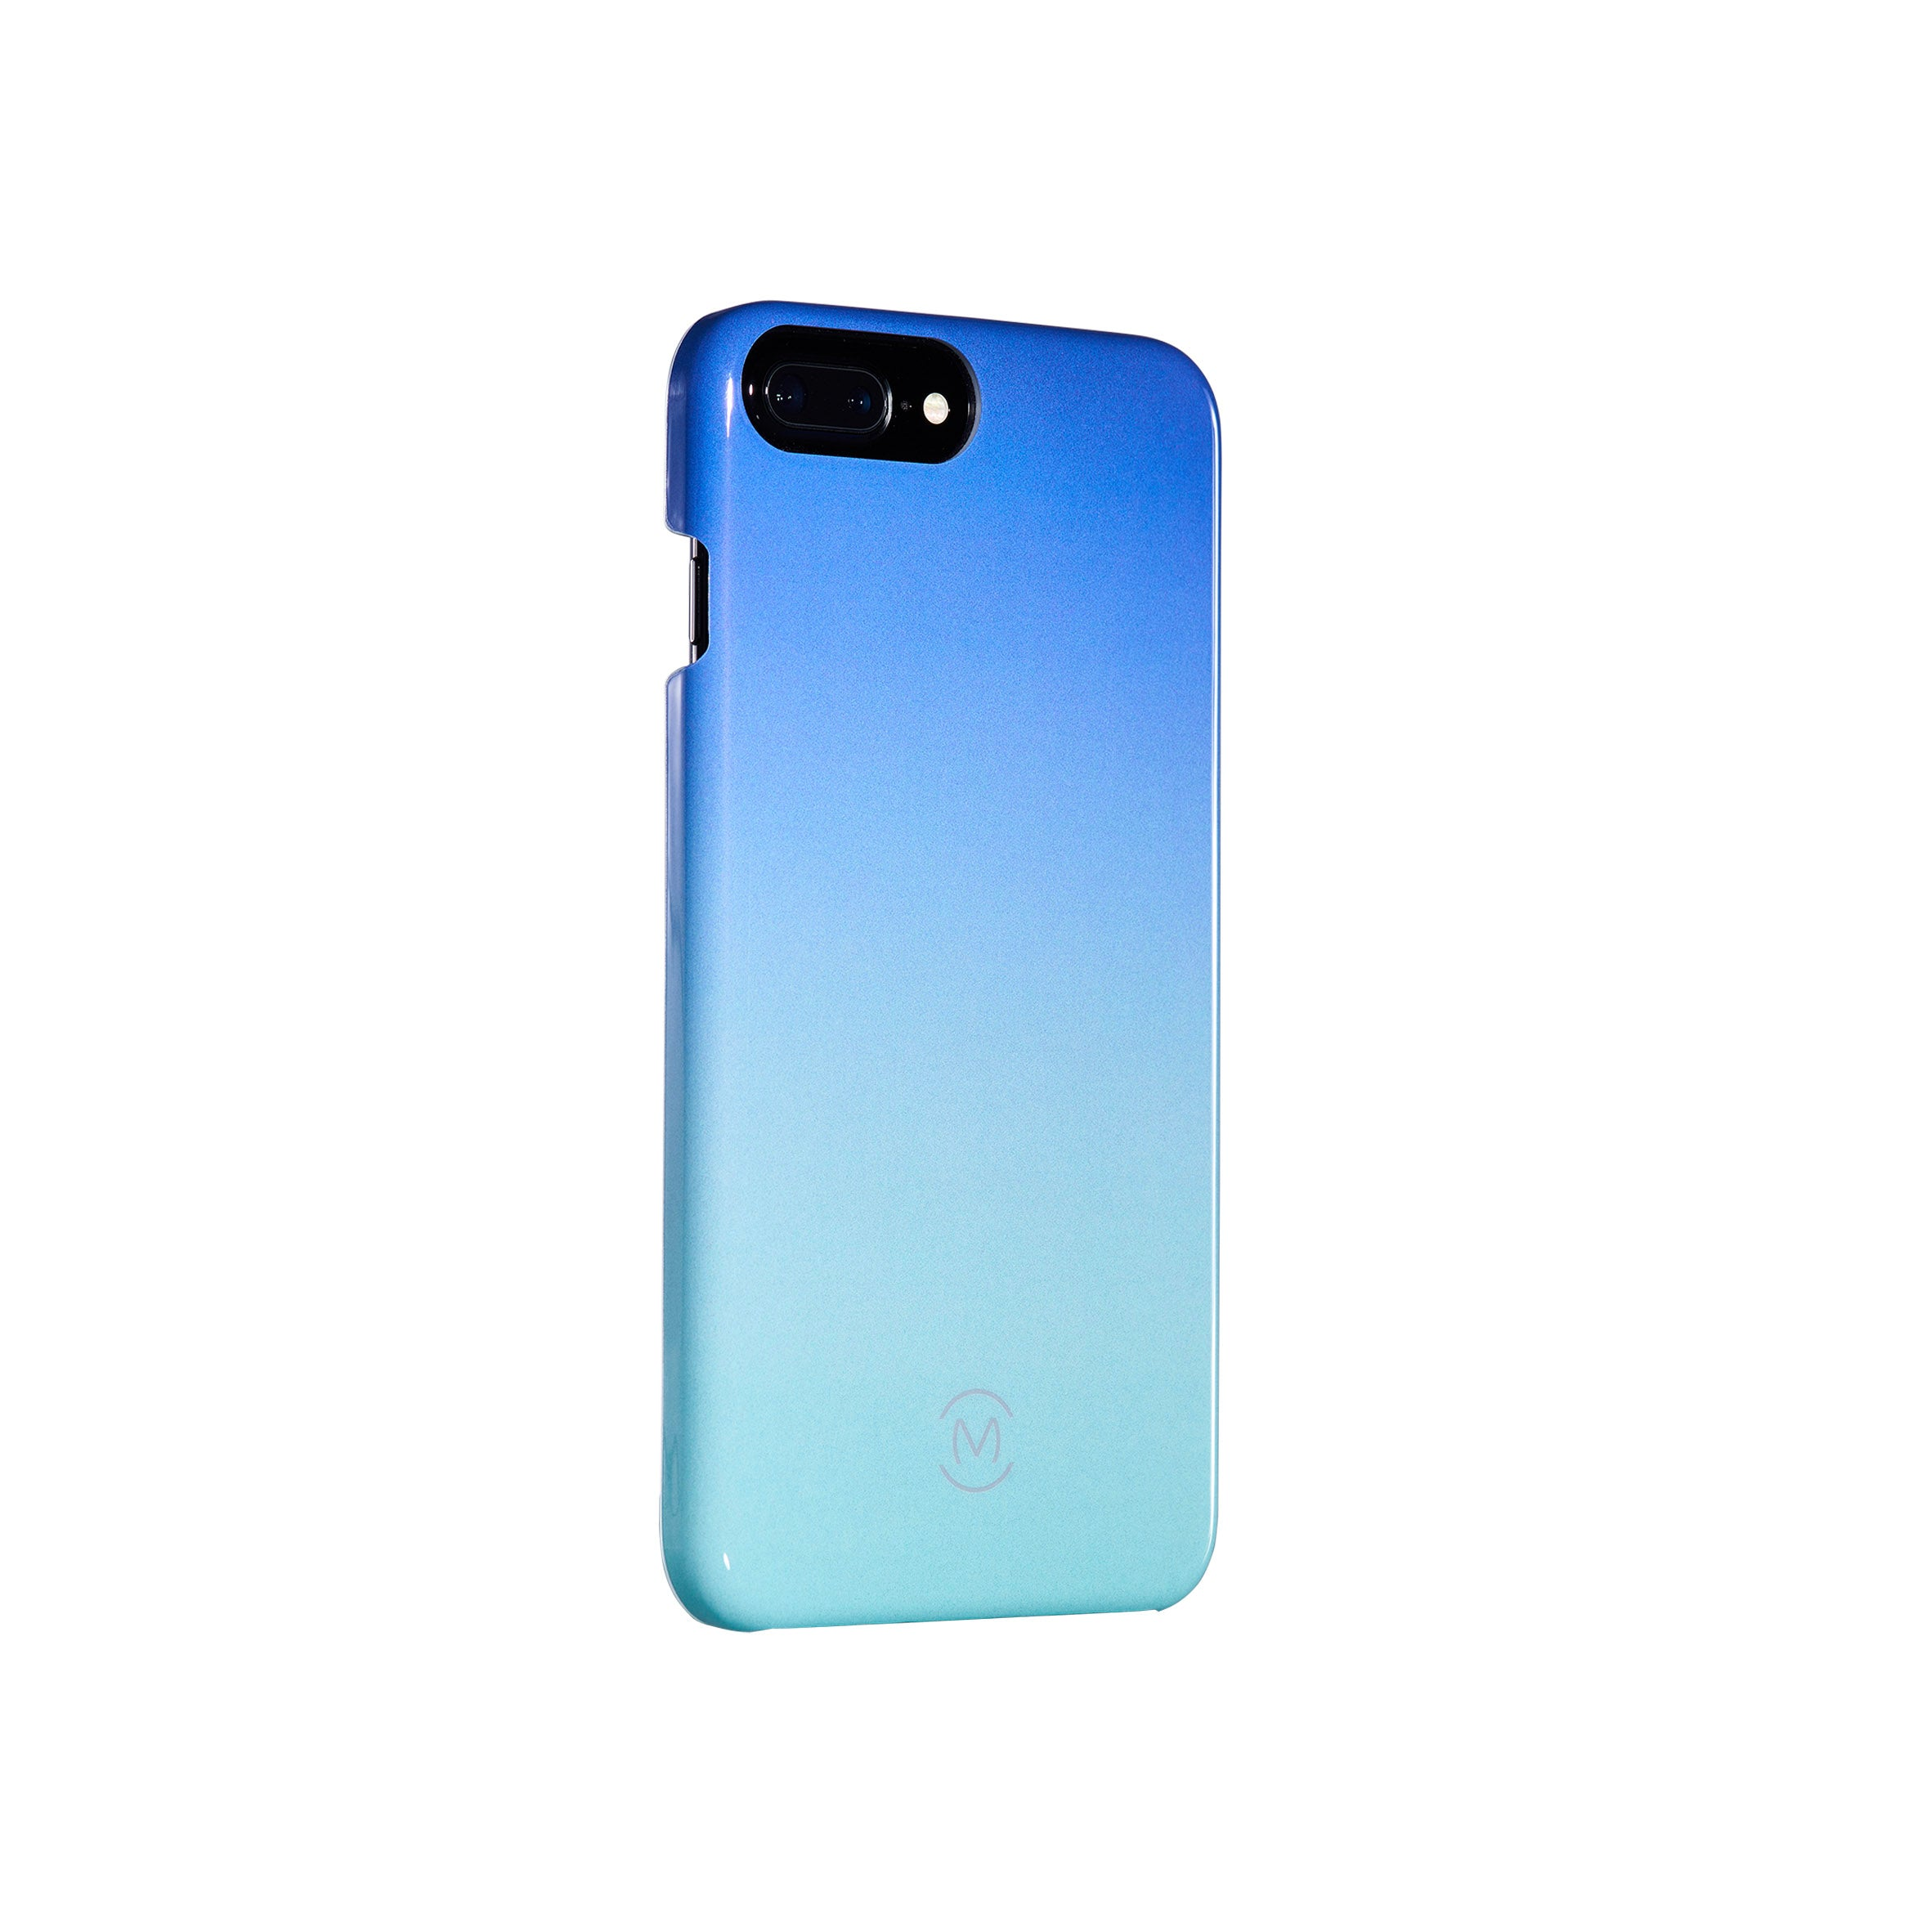 Blue-Turquoise Gradient Blue Atoll Recyclable Phone Case by Movement for iPhone 8 Plus, iPhone 7 Plus, iPhone 6s Plus, and iPhone 6 Plus (Left)